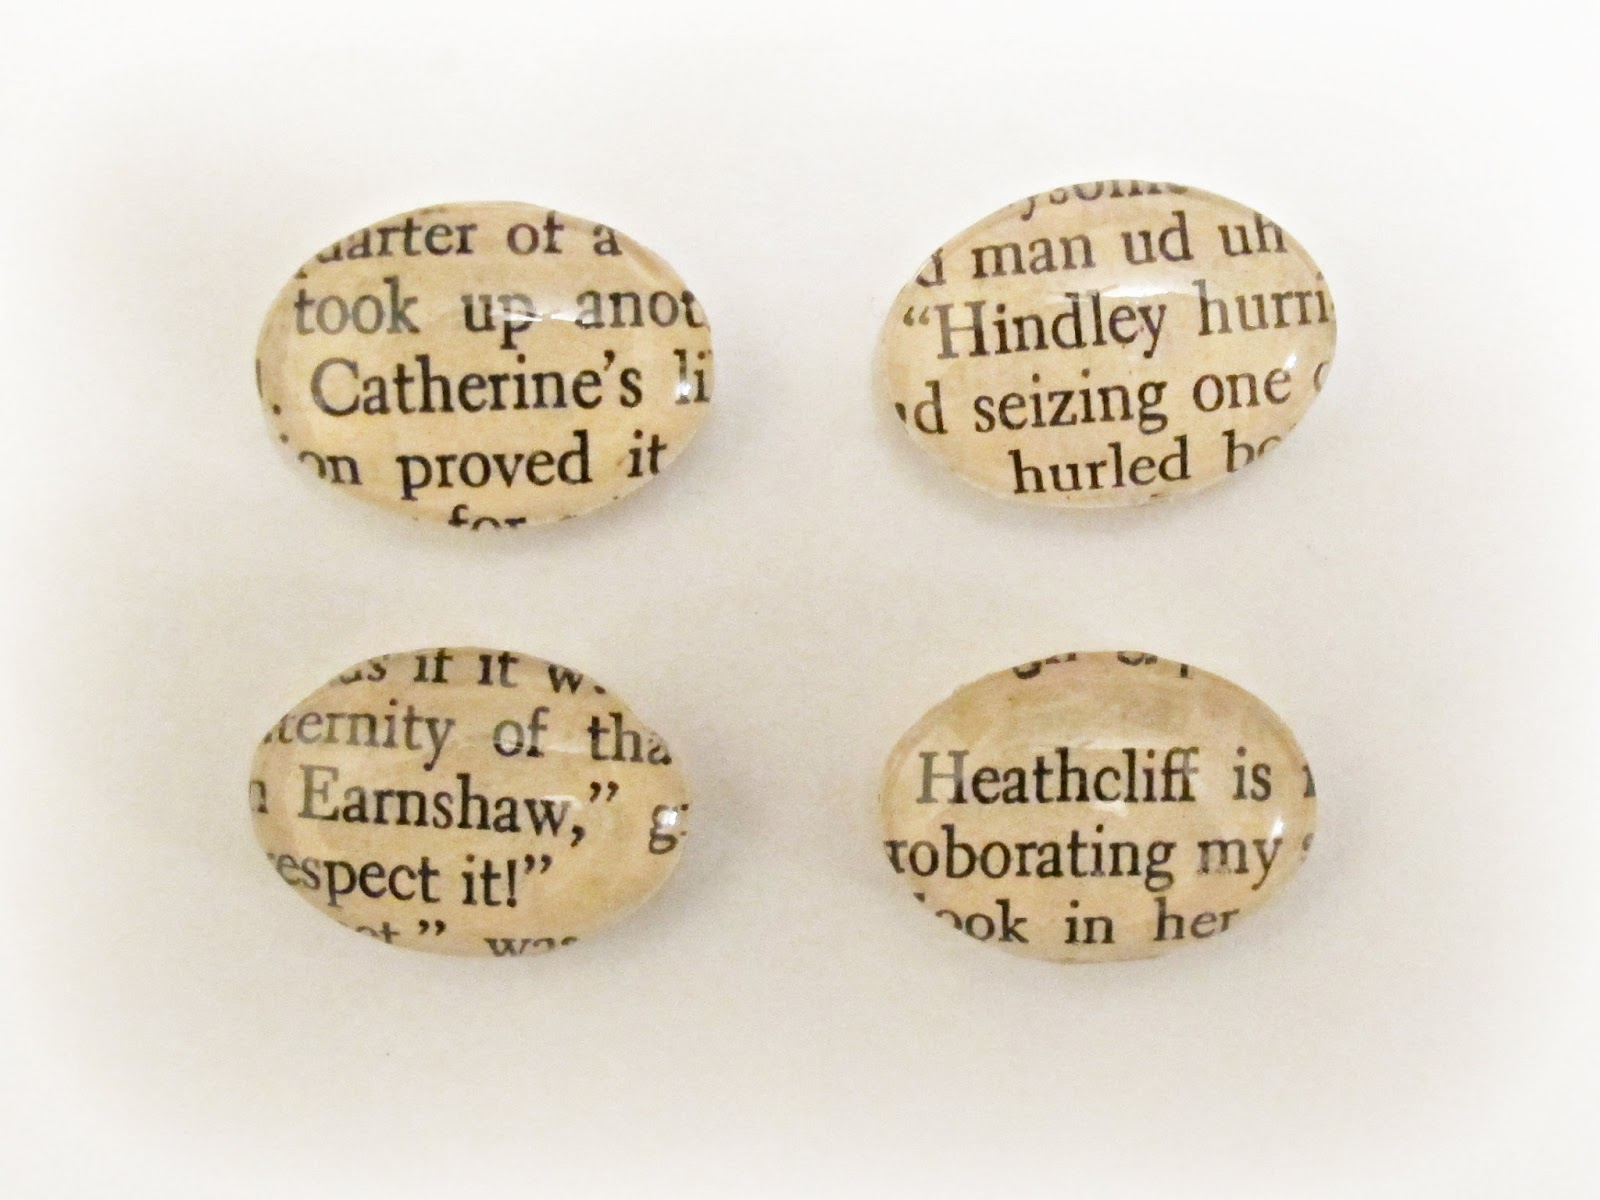 image wuthering heights magnet set heathcliff earnshaw catherine hindley emily bronte words text glass domum vindemia